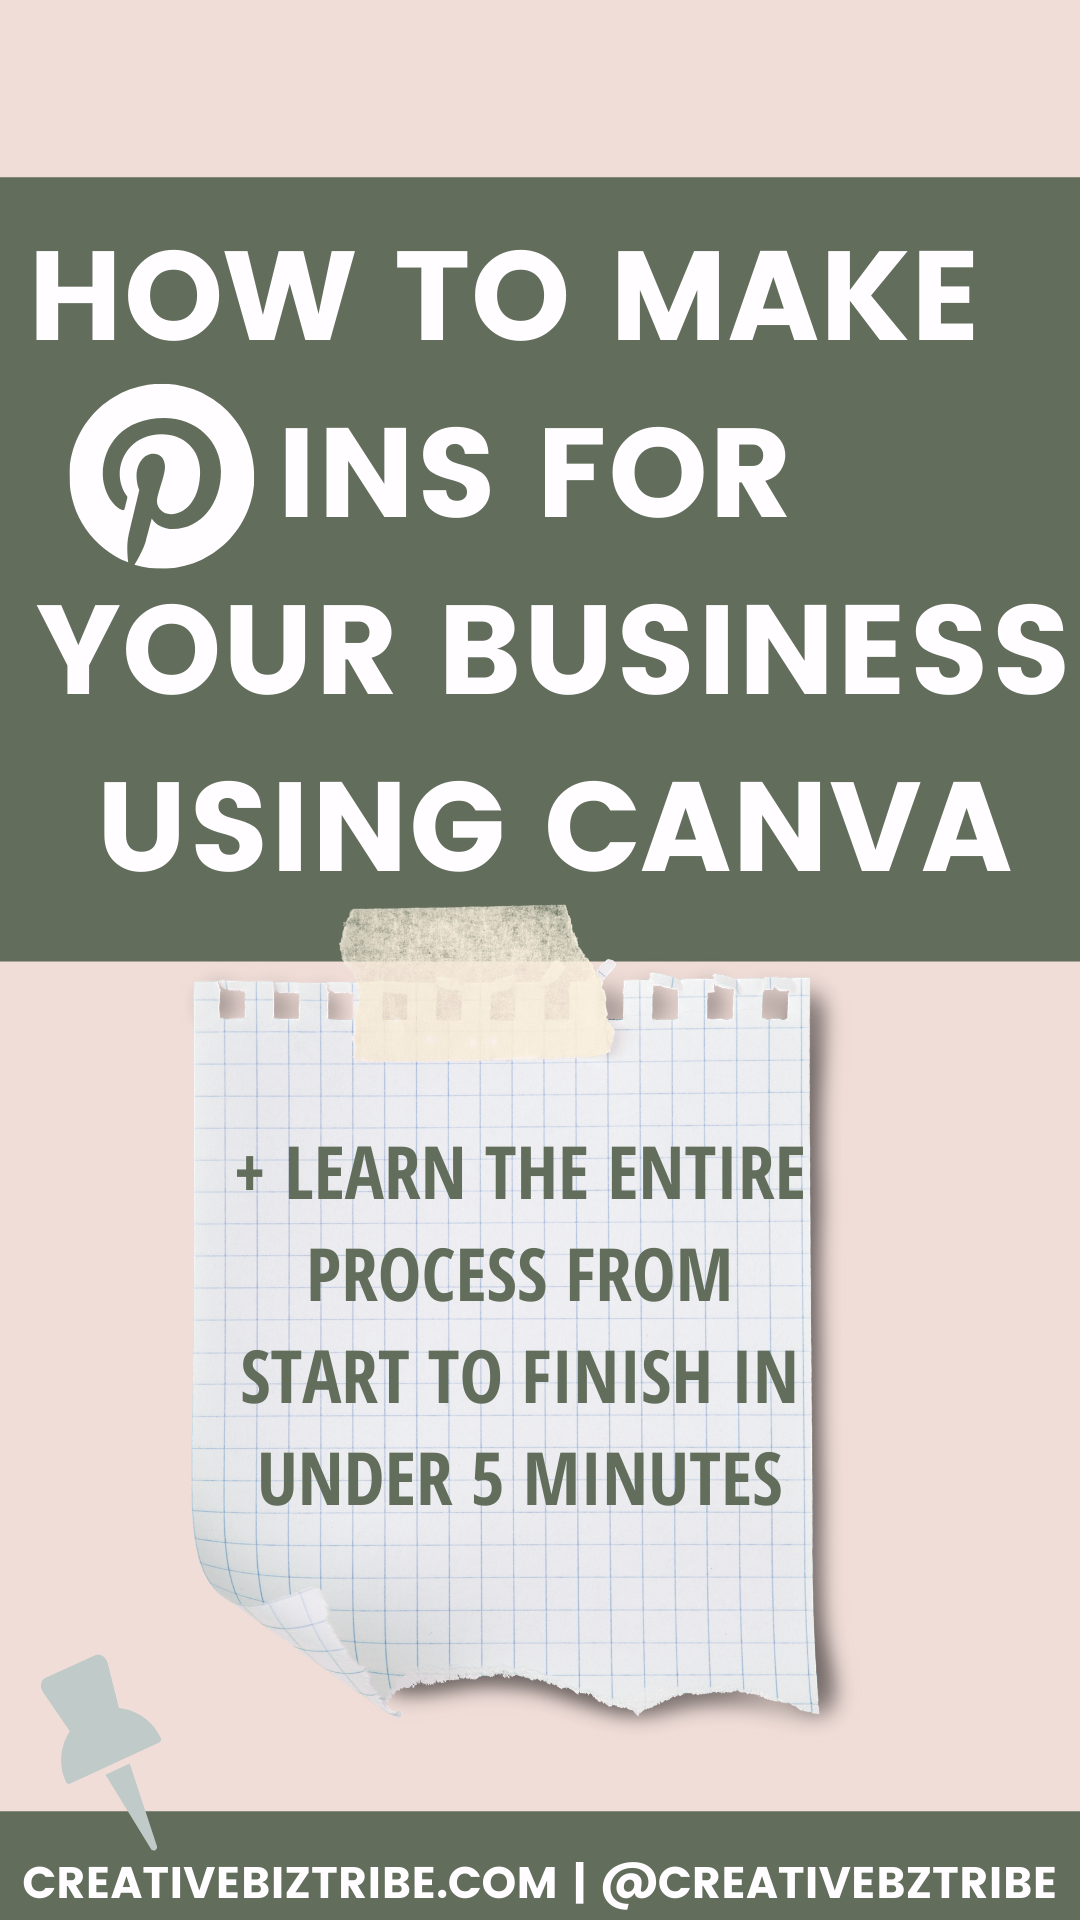 How to Make Pins 51 pinterest templates via Canva creativebiztribe.com #pinteresttemplate #pinterest #canvatemplate